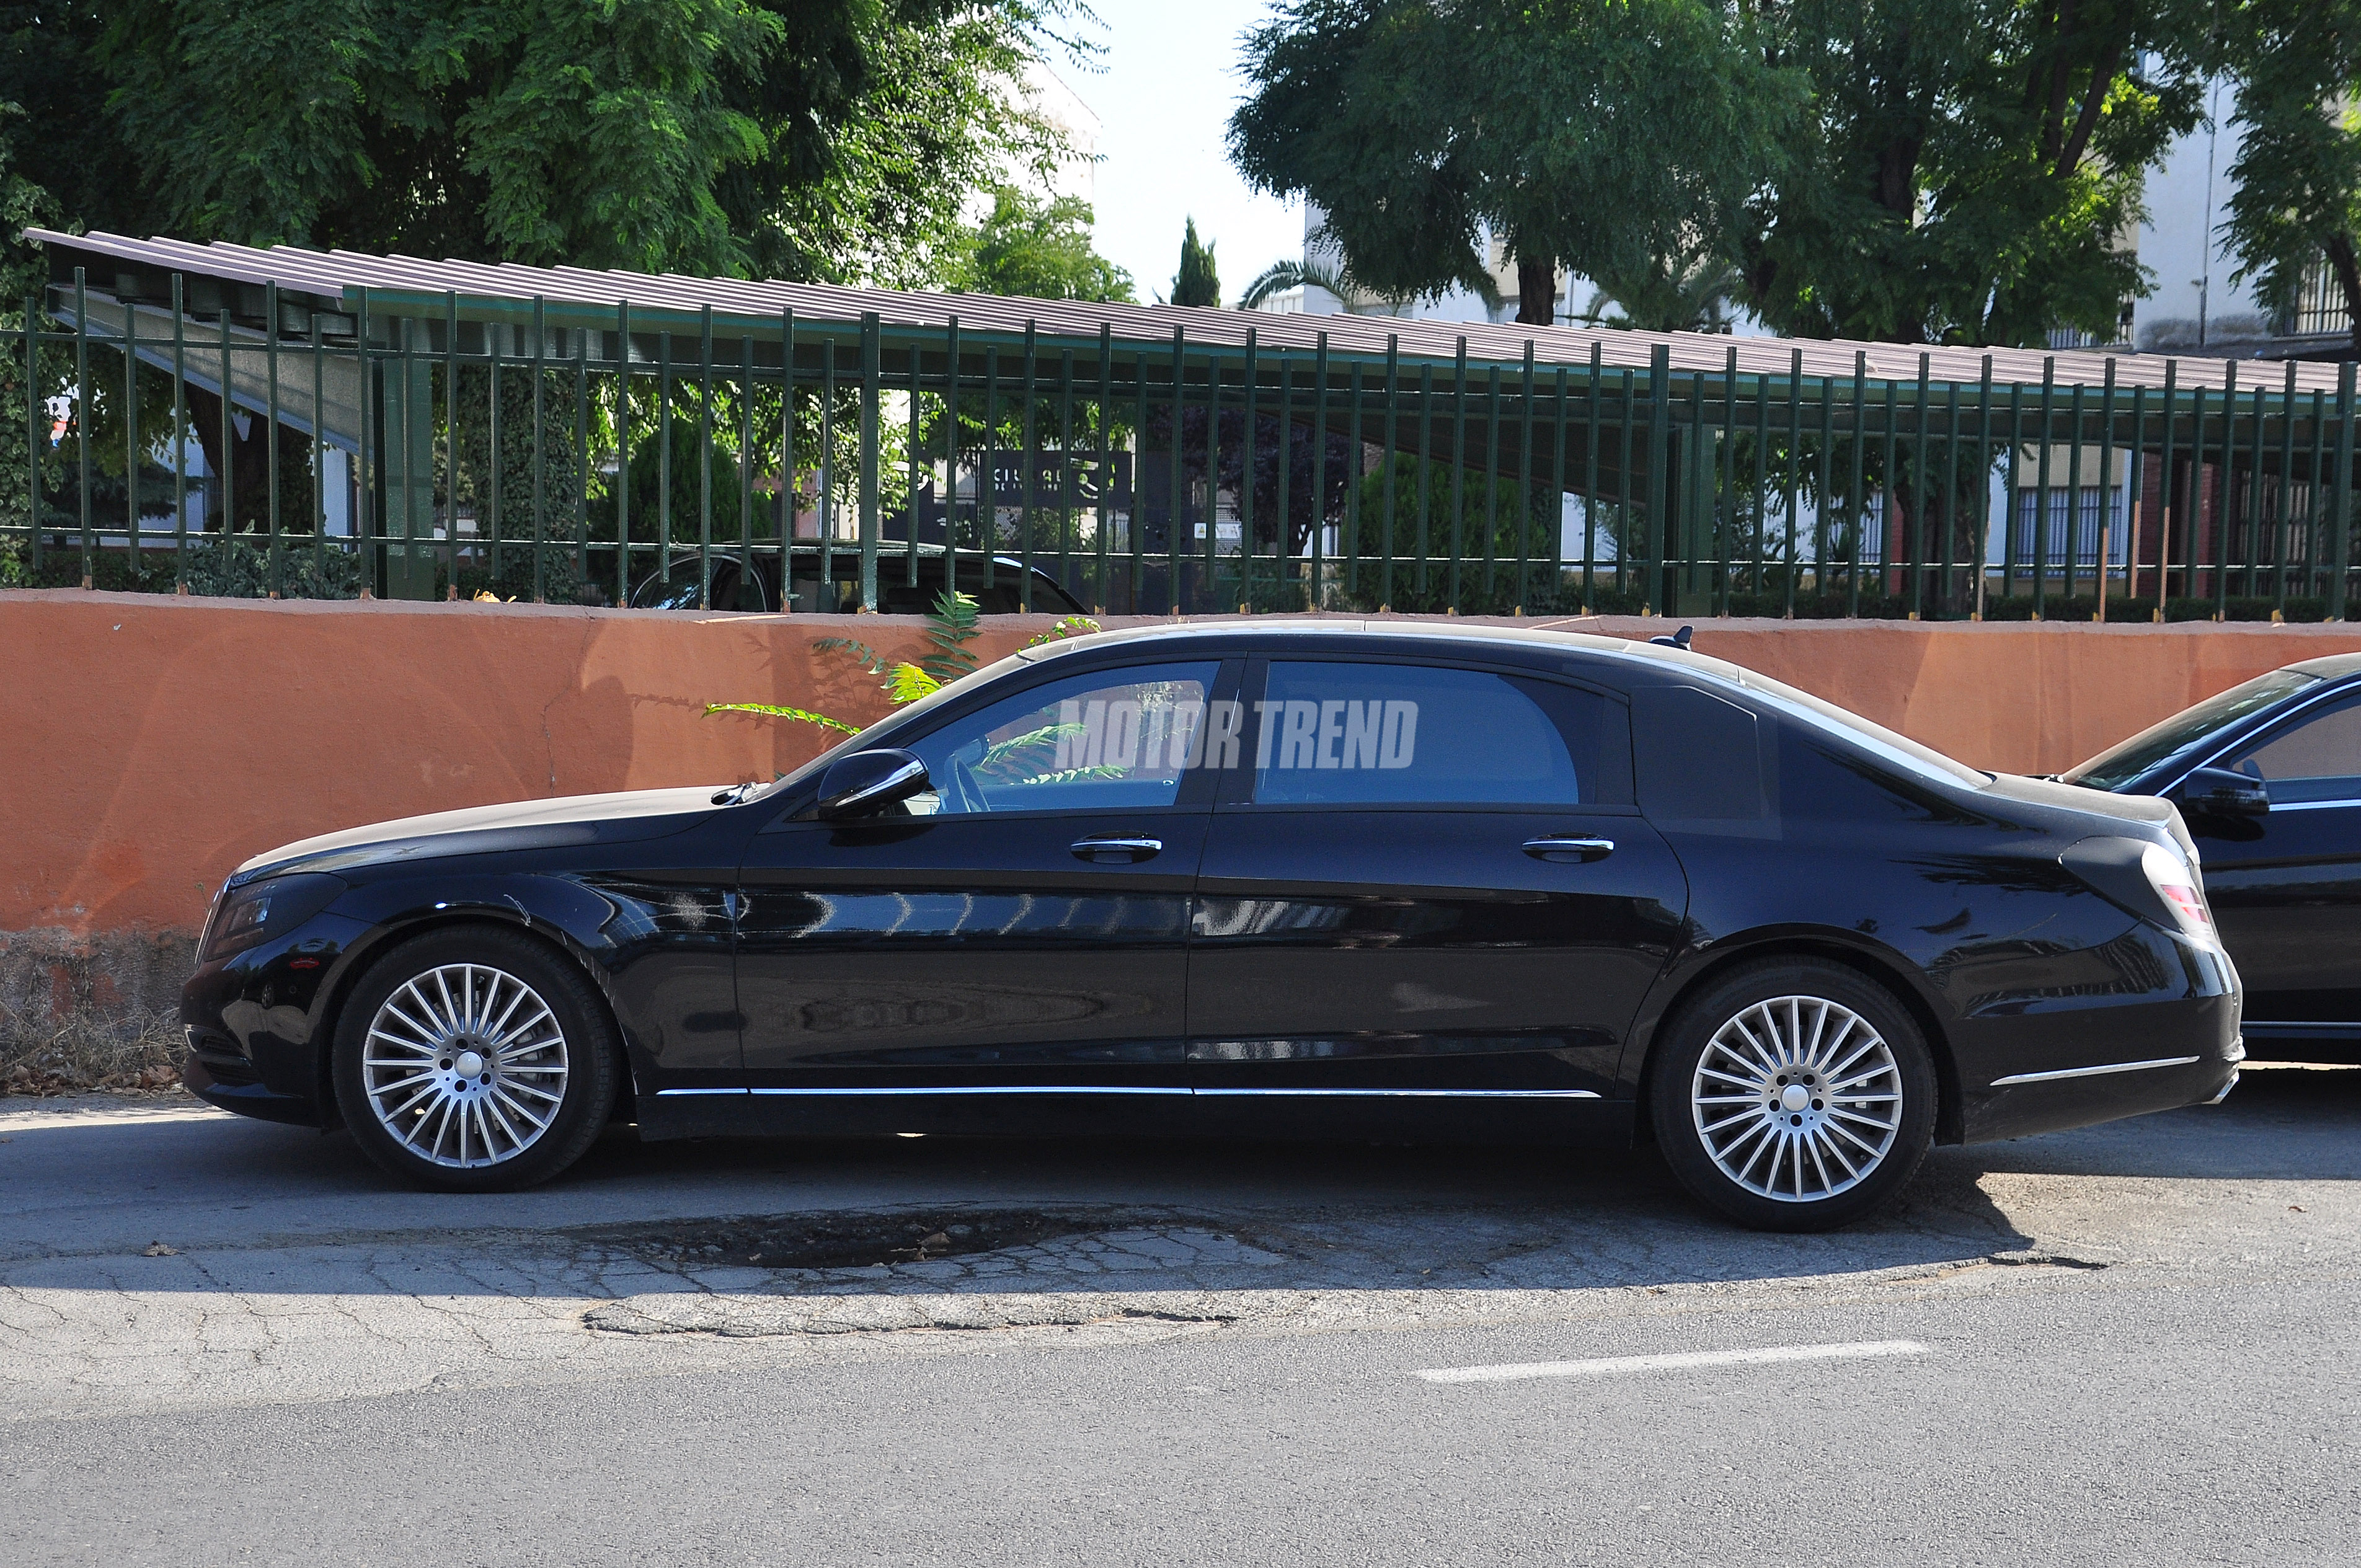 2015 mercedes-benz s-class extra-long wheelbase spotted testing